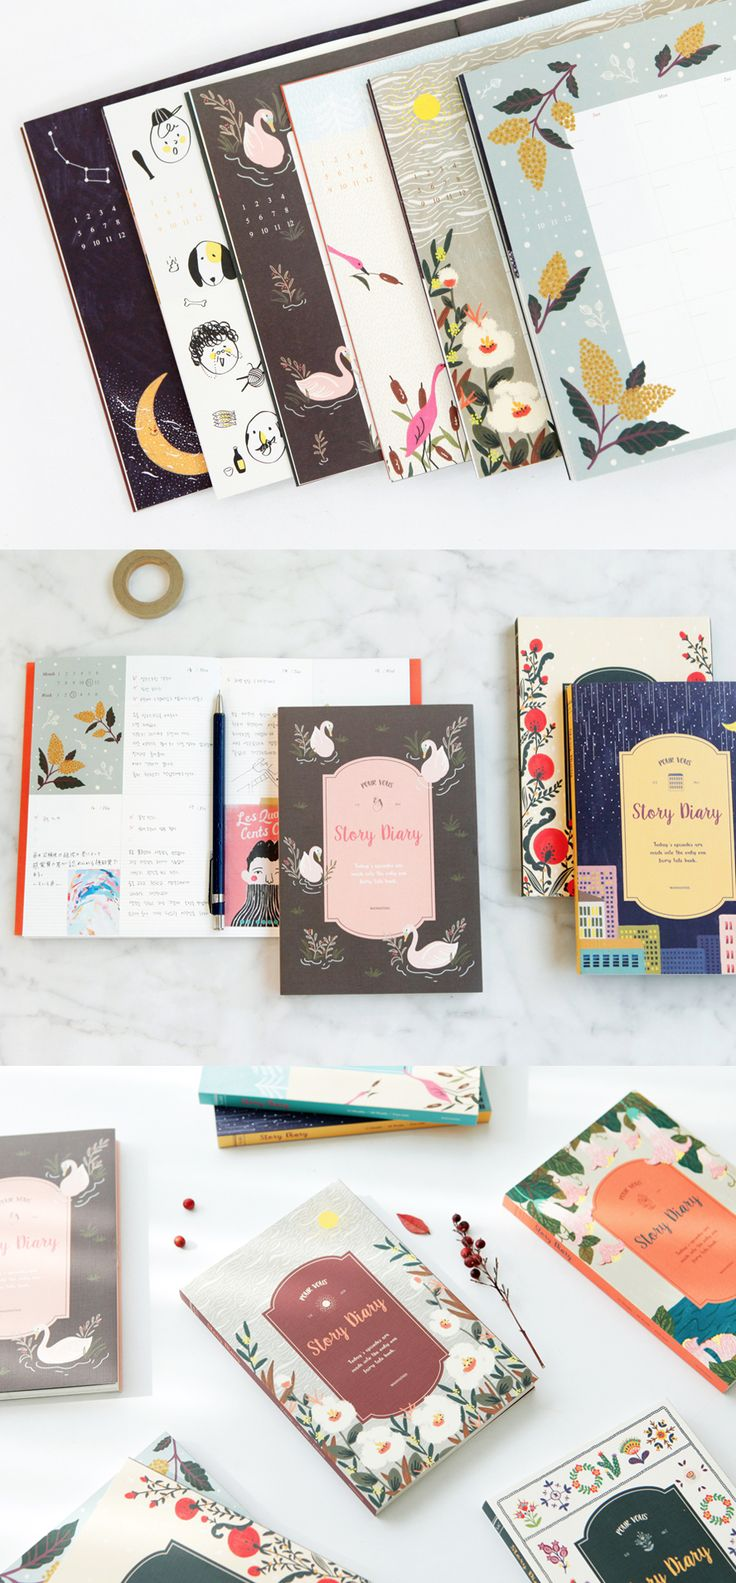 Pour Vous Story Diary Scheduler